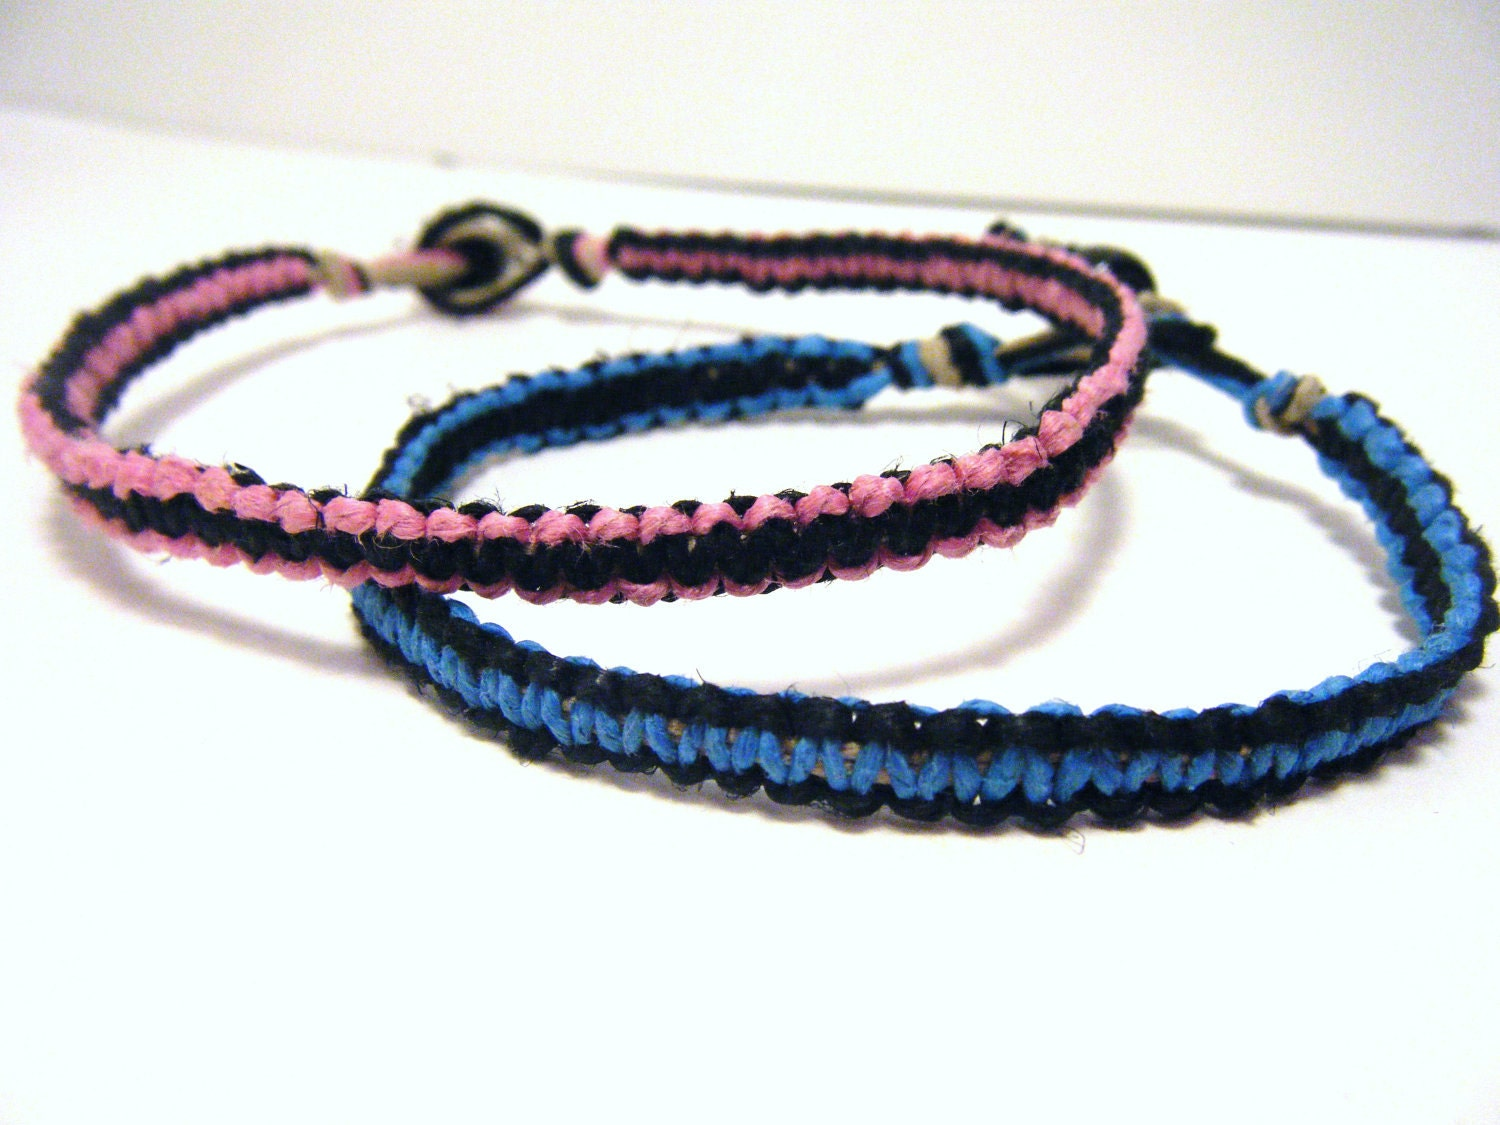 Couples Colored Hemp Bracelets Set of 2 MADE TO ORDER-1 Week production time